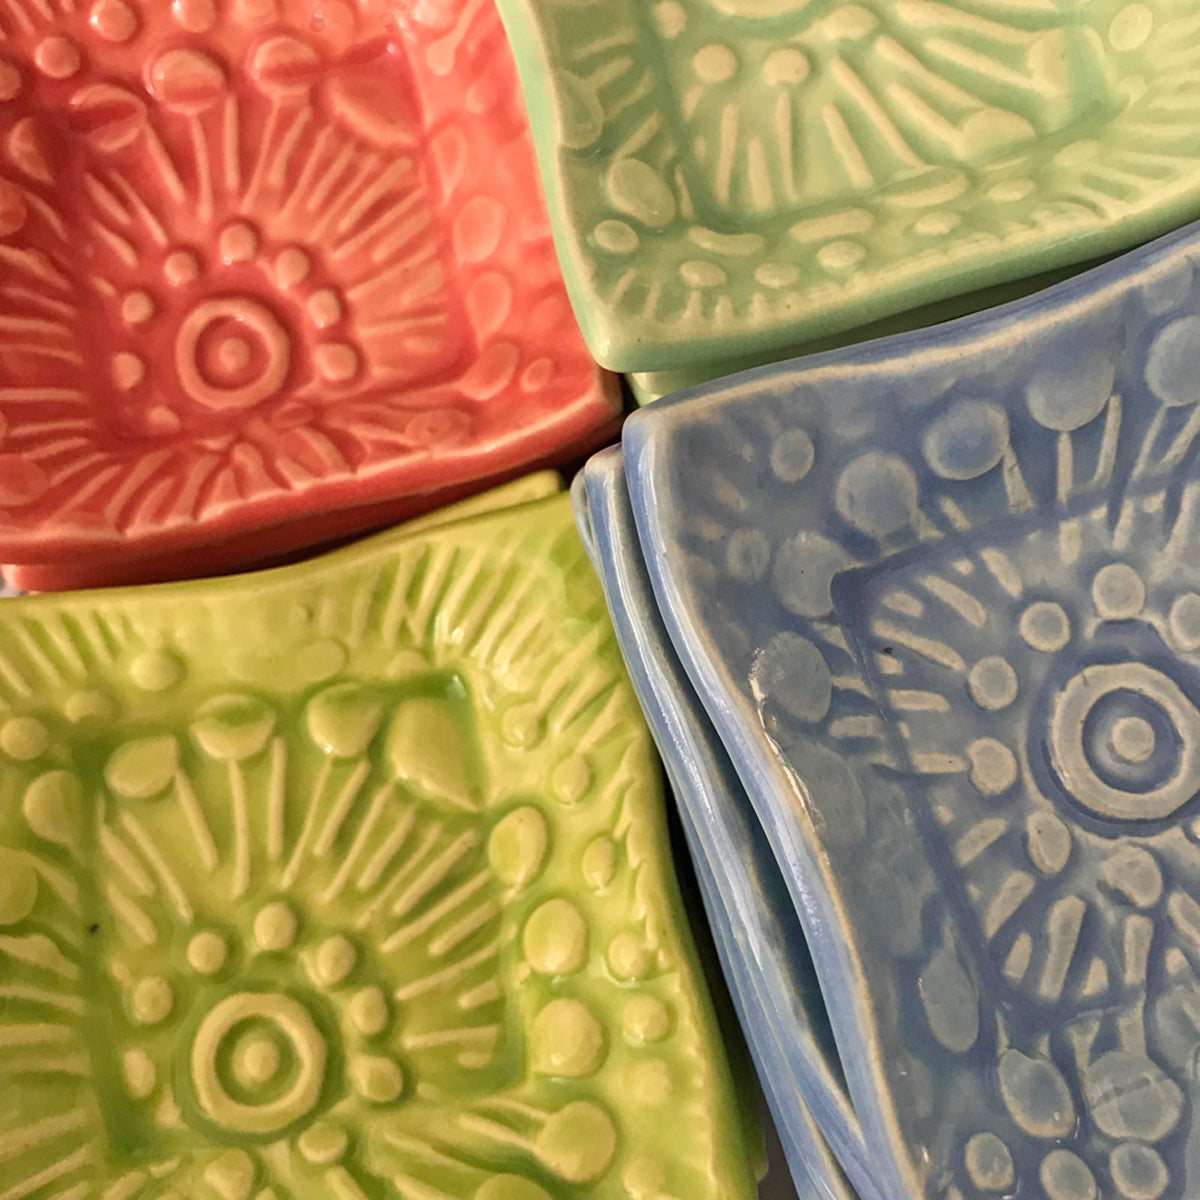 Tiny dish by Lorraine Oerth and Company measures 3 x 3 inches and comes in a variety of colors.